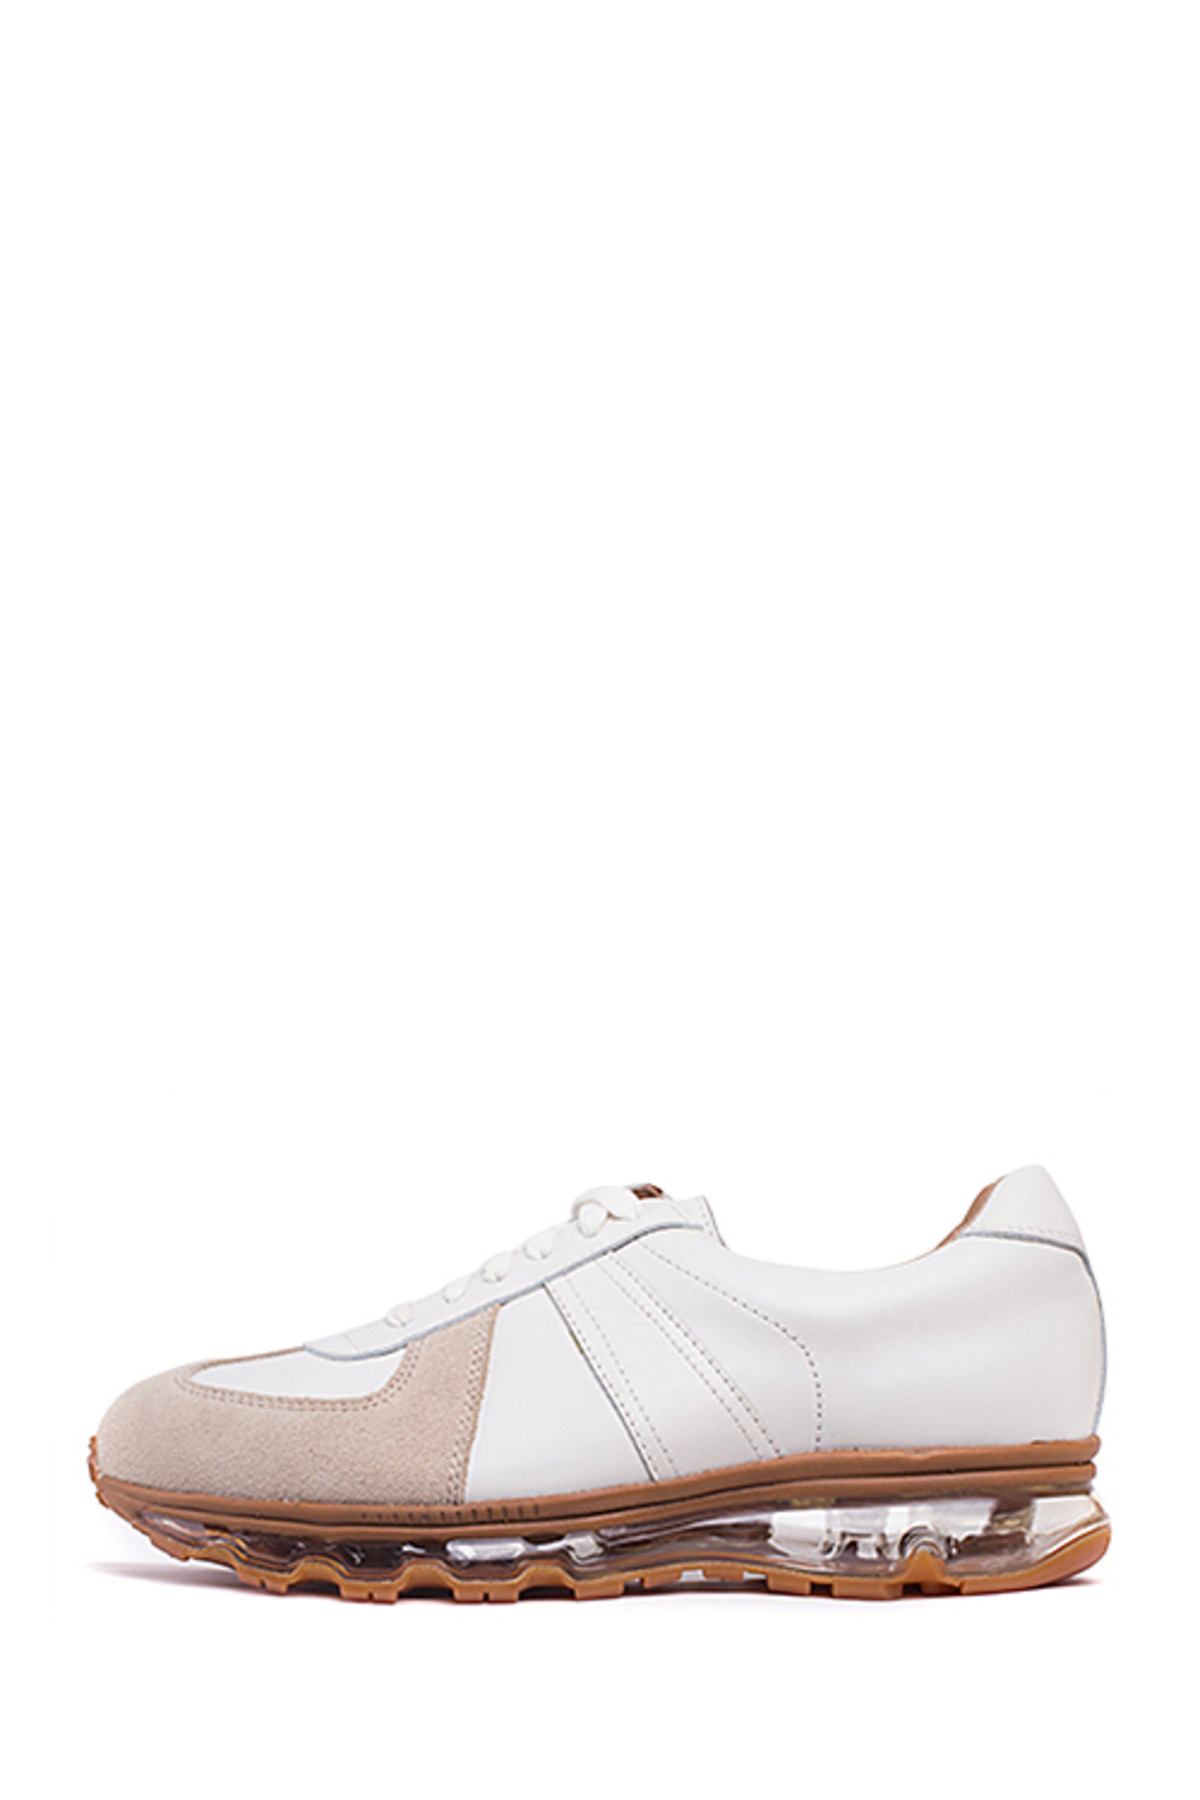 Tomo & Co. : German Trainer (White Leather / Gum Sole)